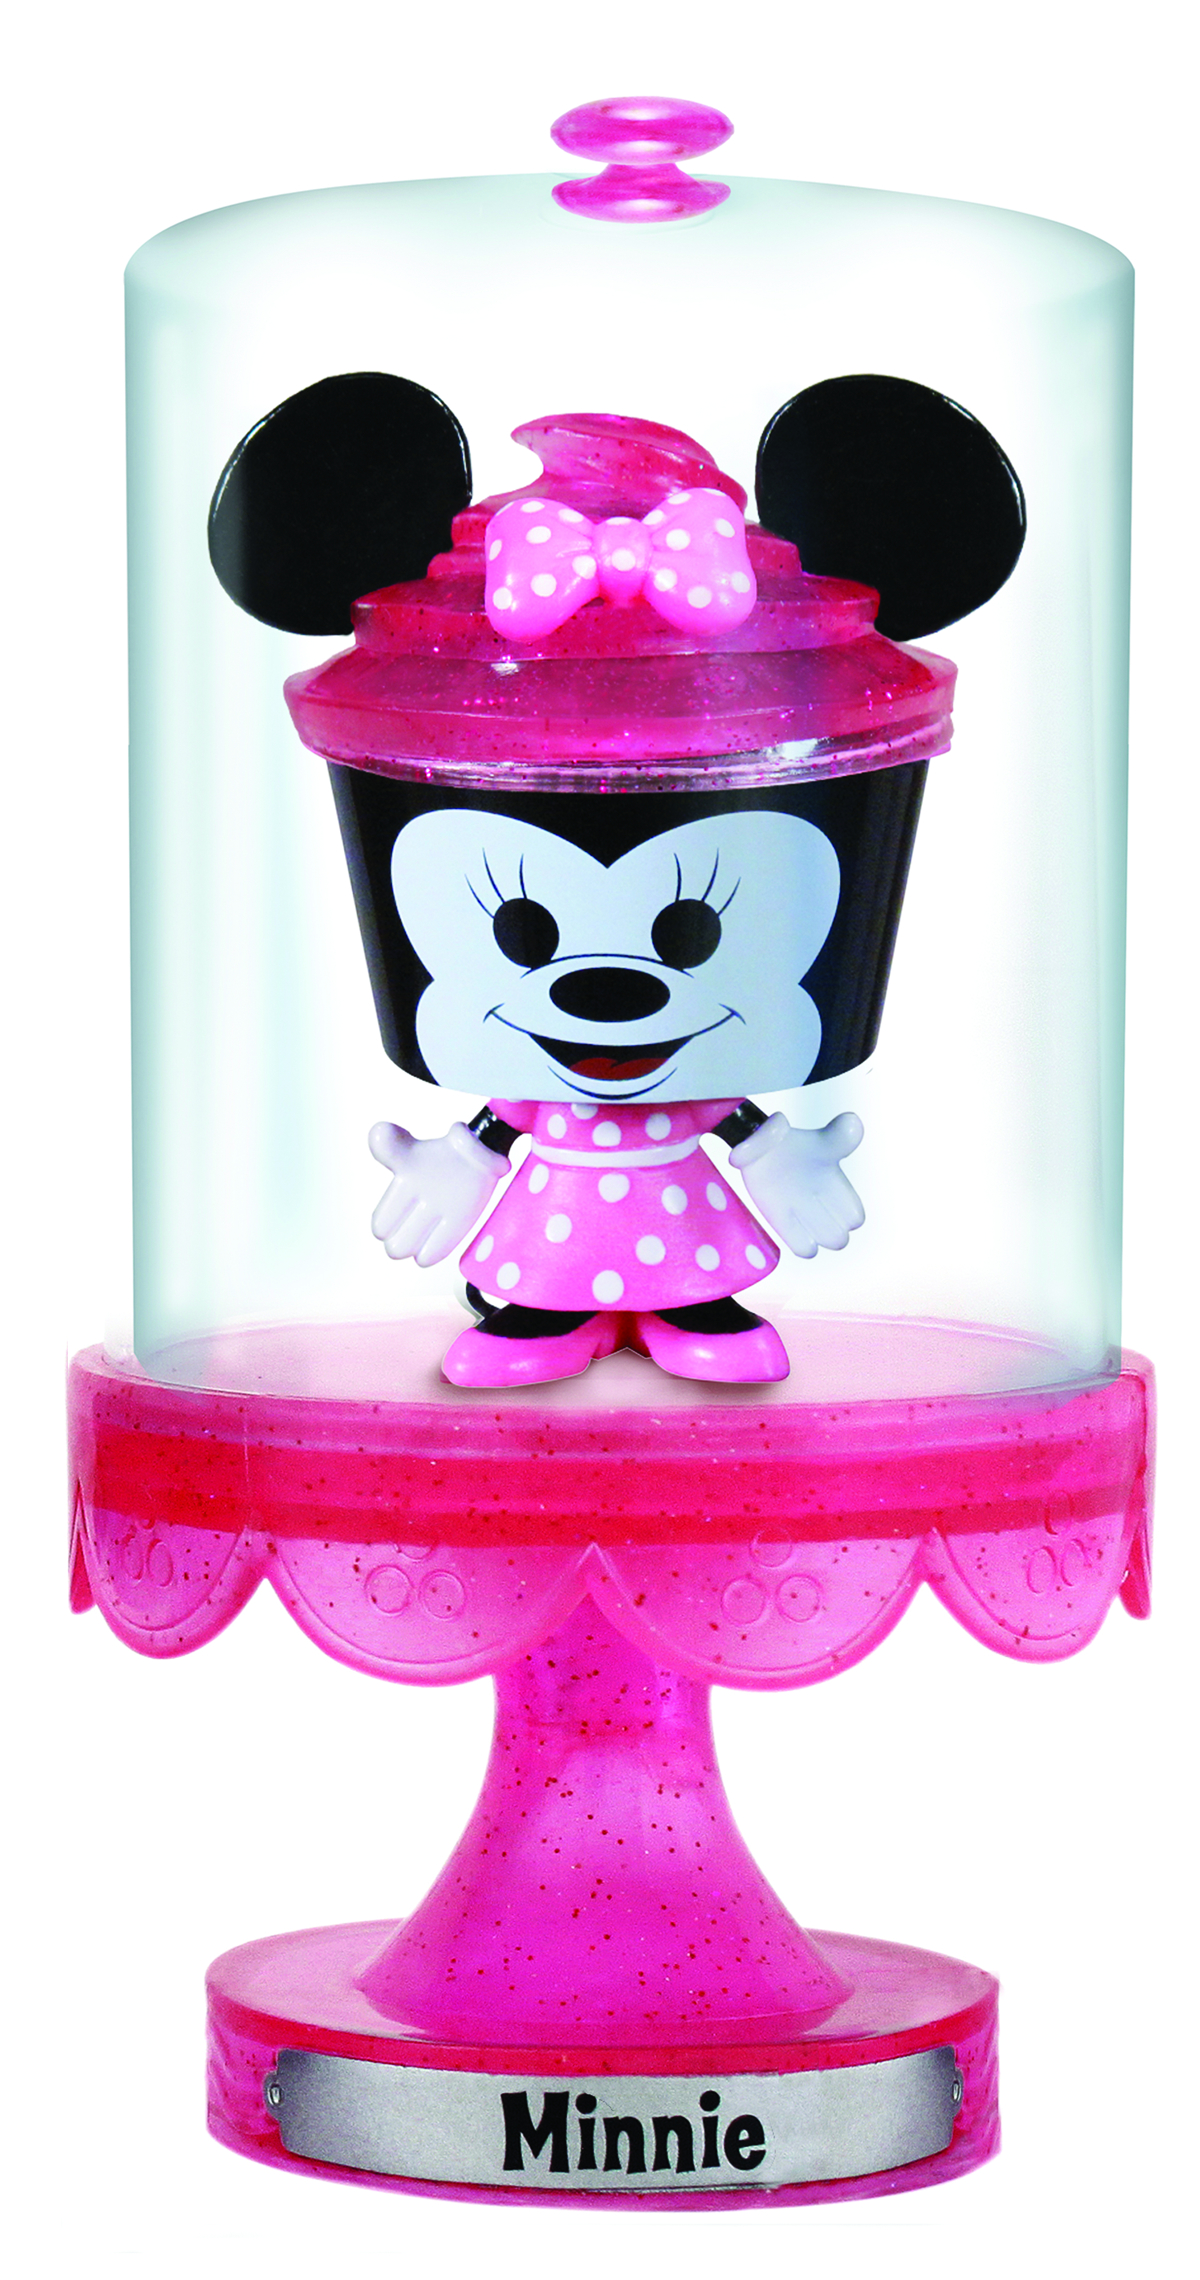 DISNEY MINNIE MOUSE CUPCAKE KEEPSAKES FIG